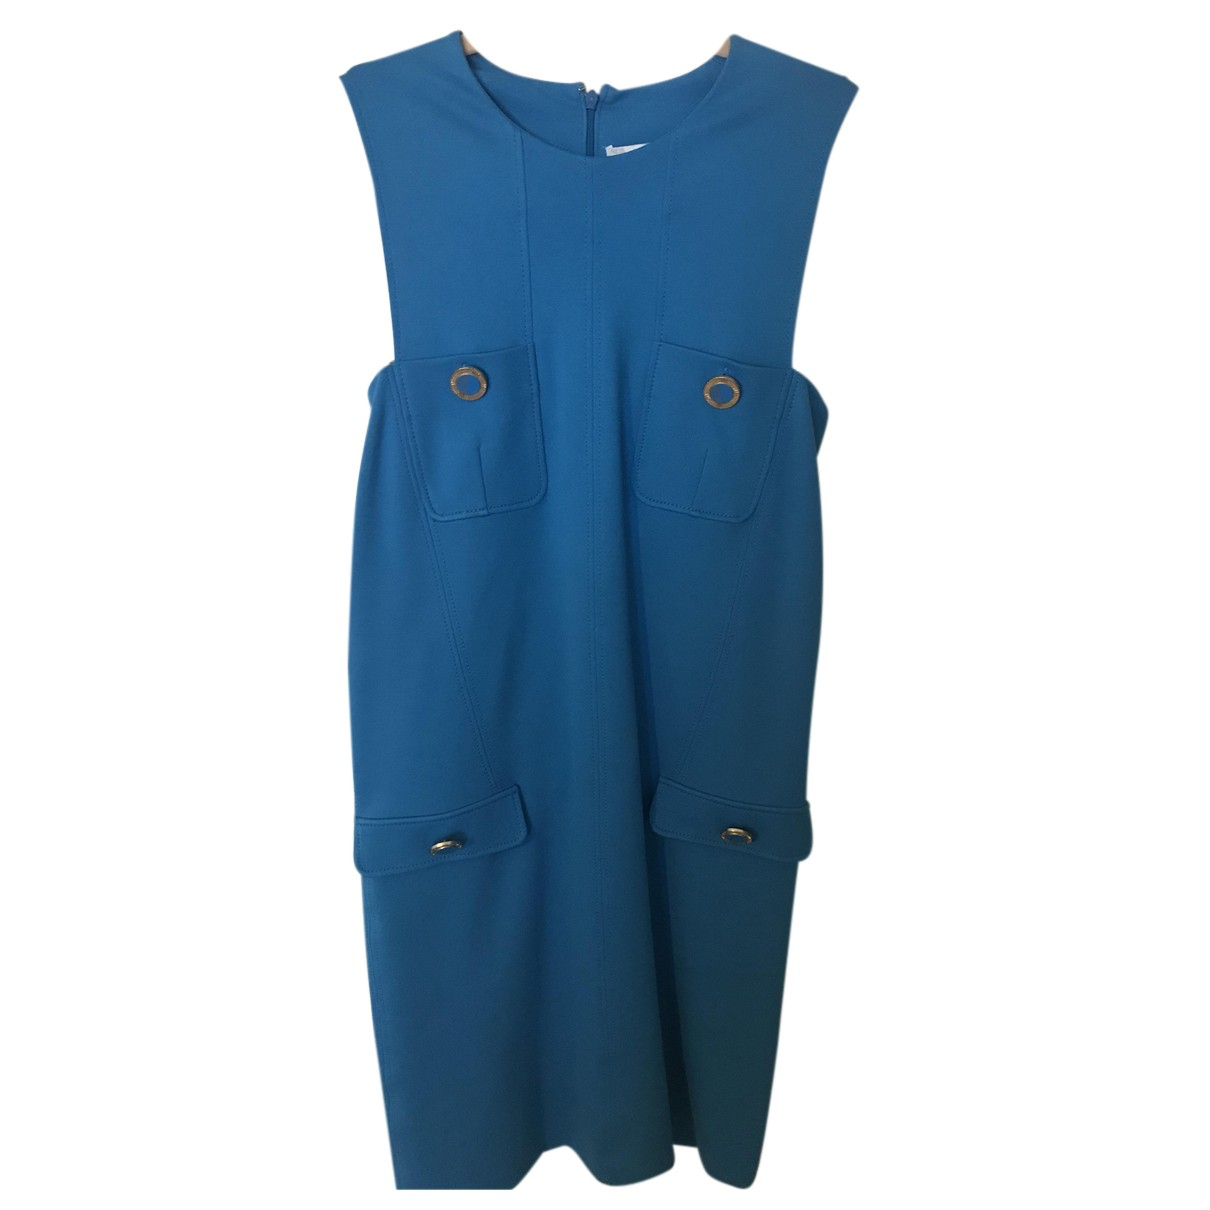 Versace N Blue Cotton - elasthane dress for Women 10 UK